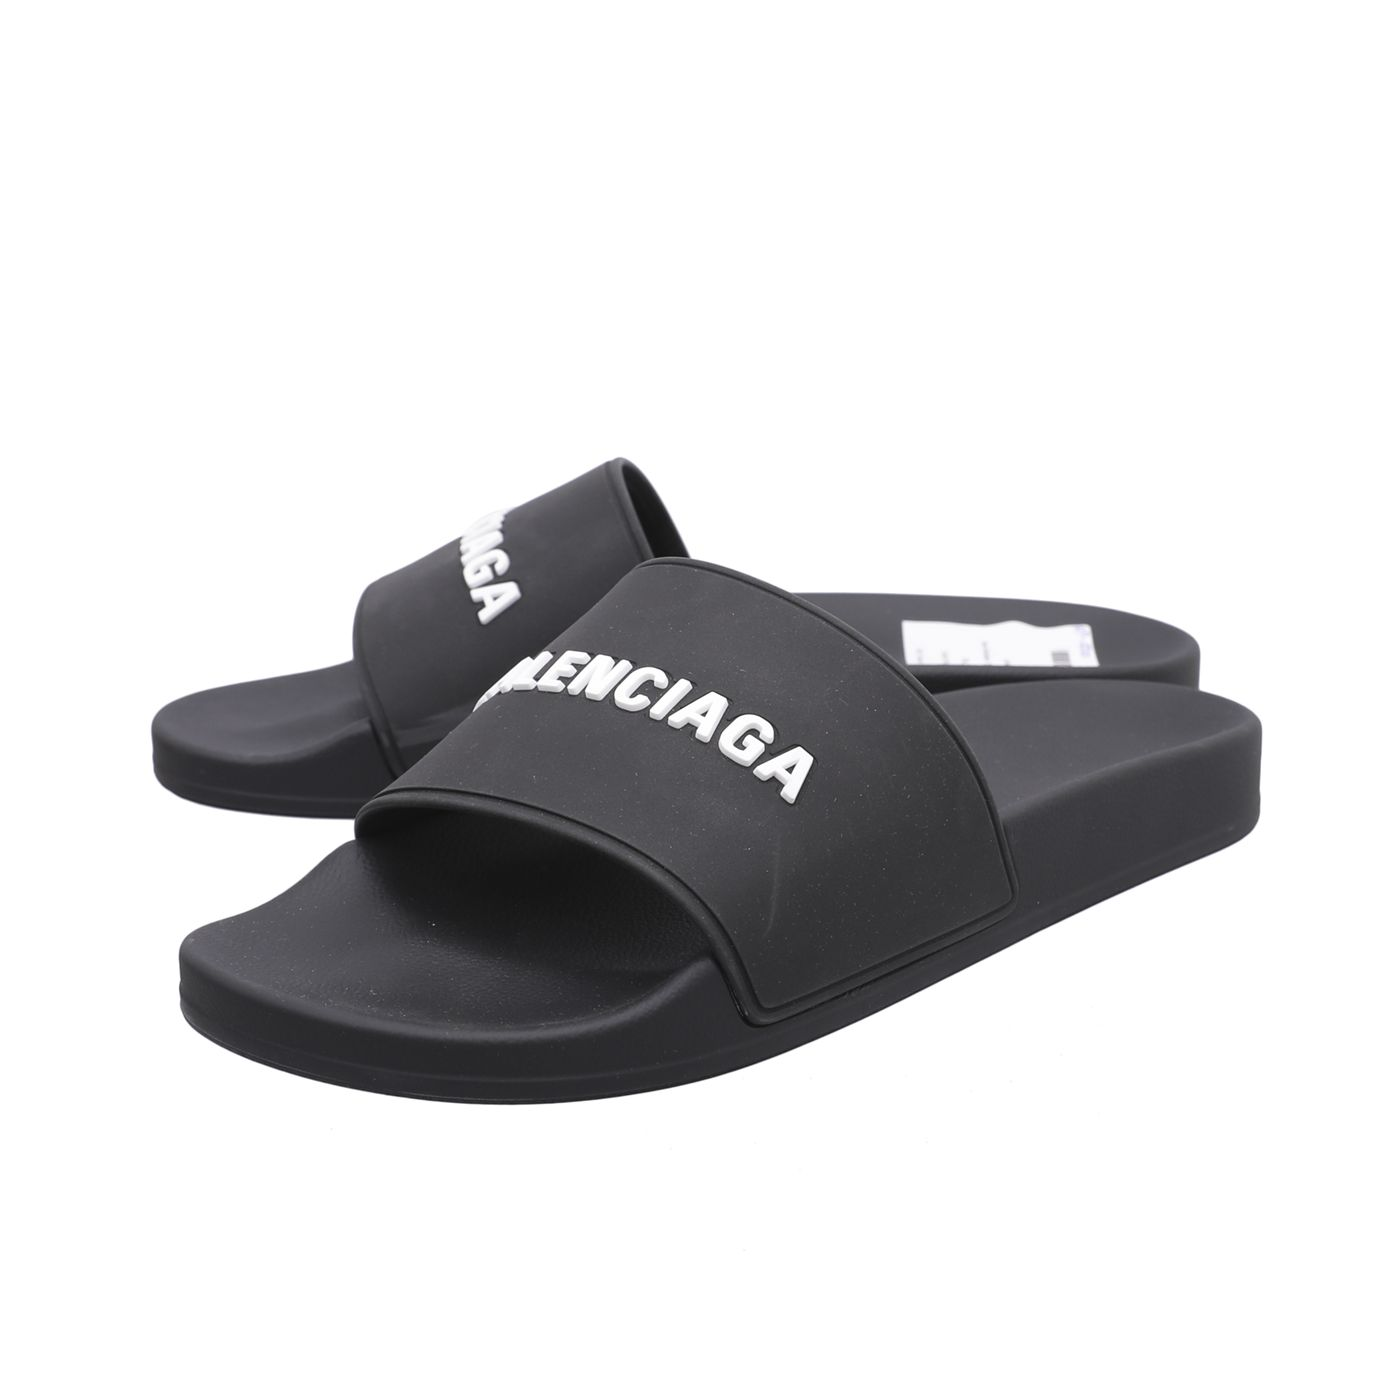 Balenciaga Black Rubber Pool Sandals 42